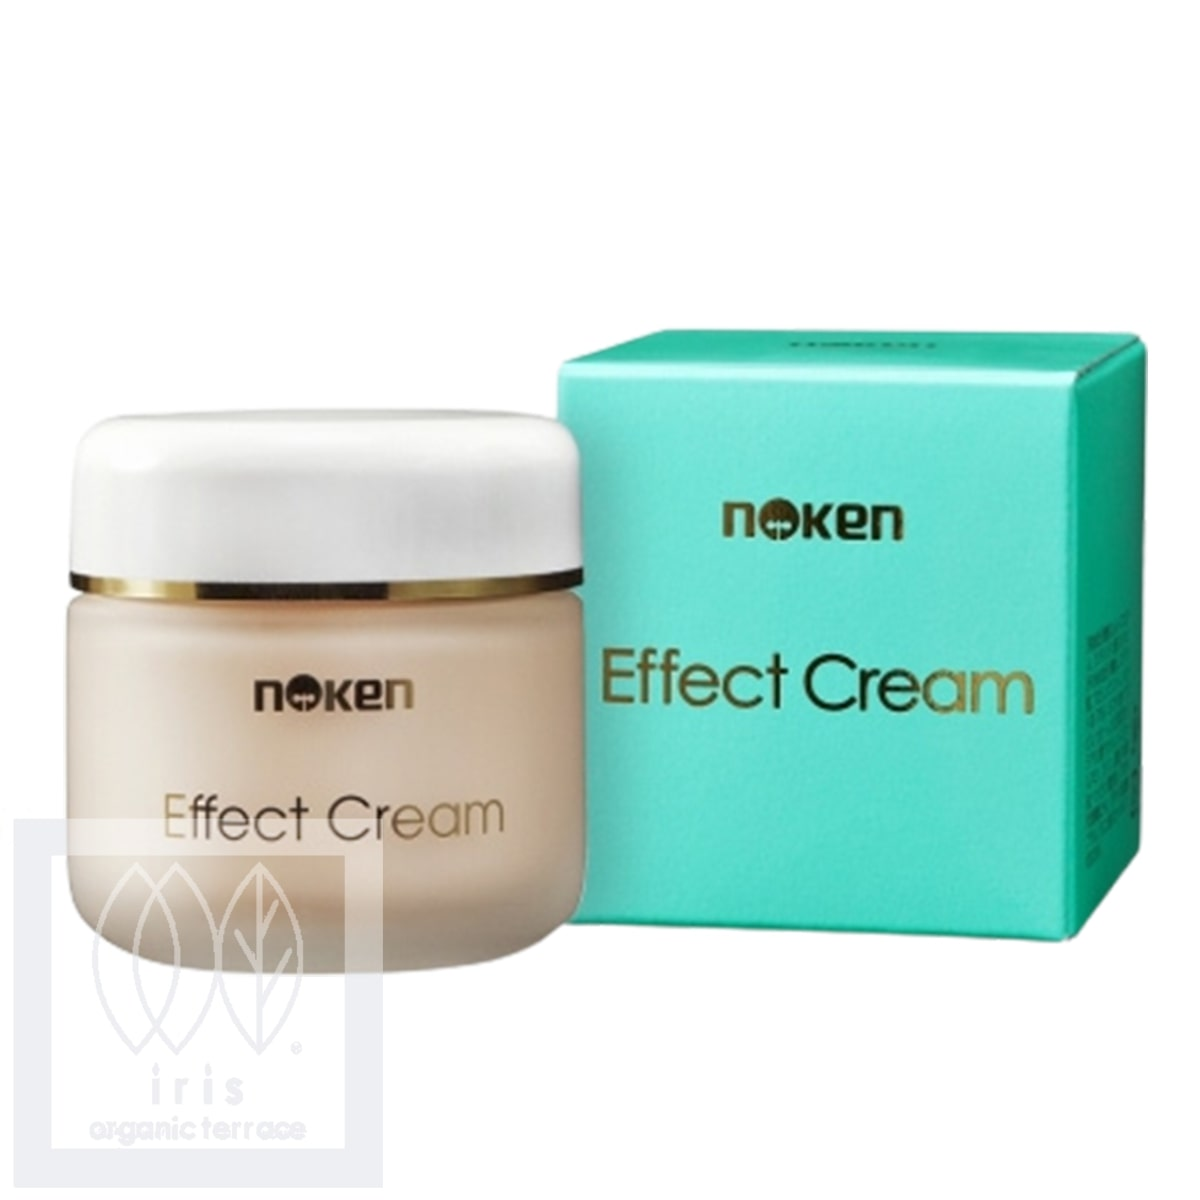 effectcream